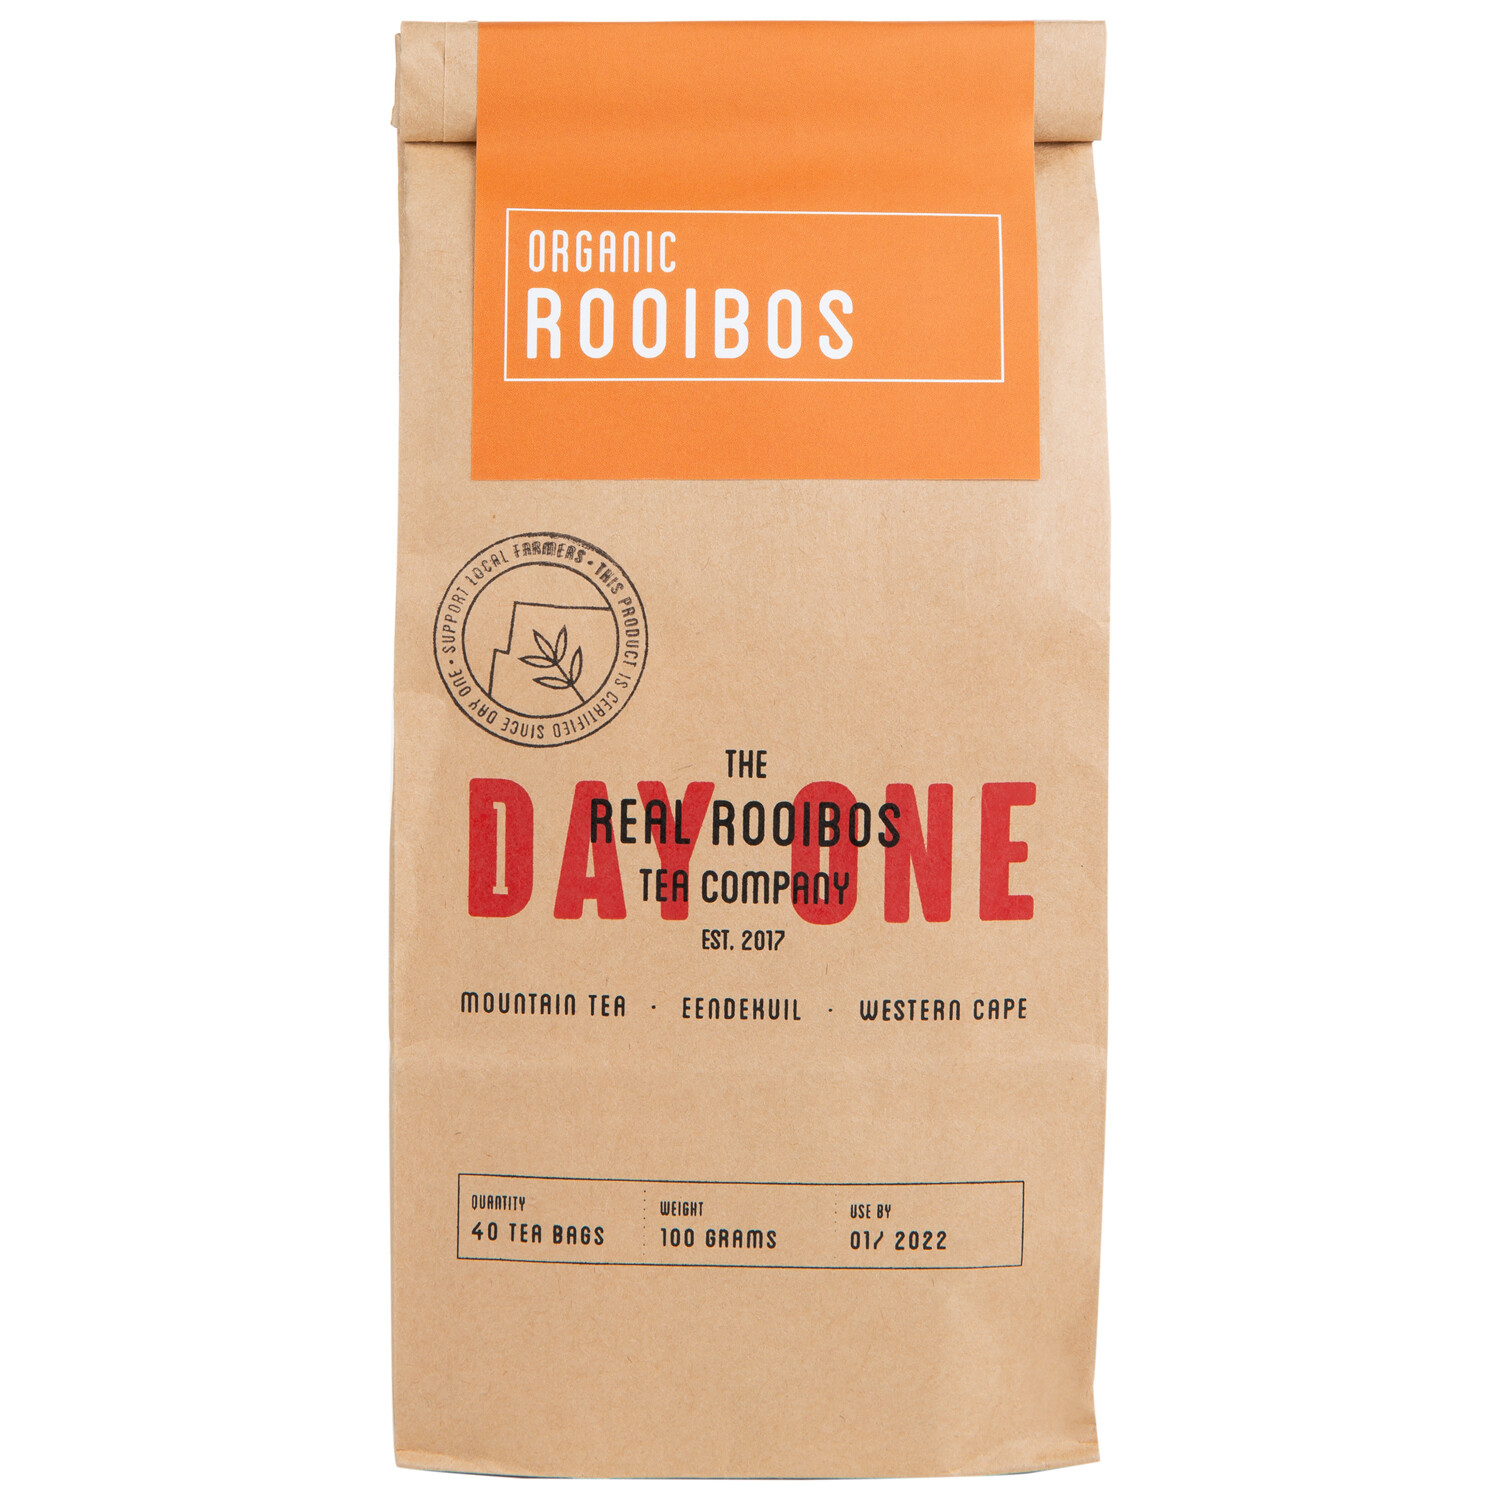 Organic Rooibos Mountain tea